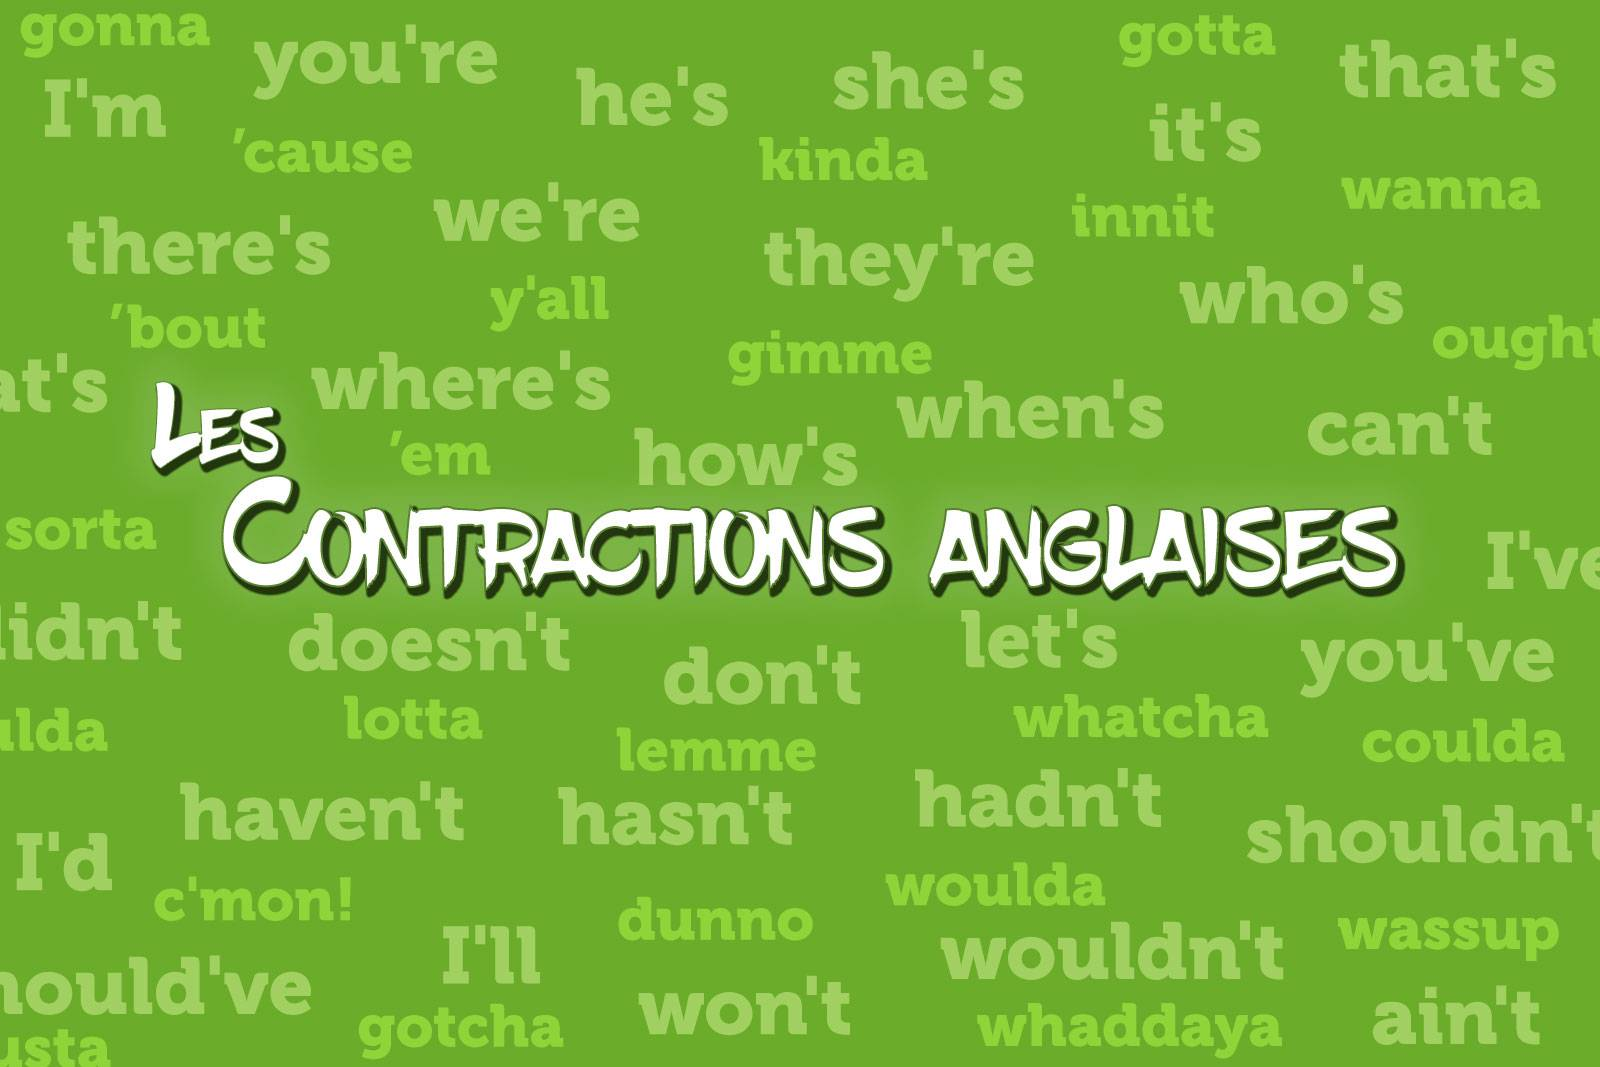 Les contractions anglaises : I'm, you're, he's, she's, it's, that's, there's, we're, they're, who's, what's, where's, how's, when's, can't, didn't, doesn't, don't, let's, I've, you've, I'd, haven't, hasn't, hadn't, shouldn't, should've, I'll, won't, wouldn't, ain't, gonna, gotta, wanna, 'cause, 'em, kinda, 'bout, y'all, gimme, oughta, sorta, whatcha, shoulda, lotta, lotsa, c'mon, coulda, lemme, woulda, musta, gotcha, dunno, wassup, whaddaya, innit, prolly, s'pose, wassamatta,